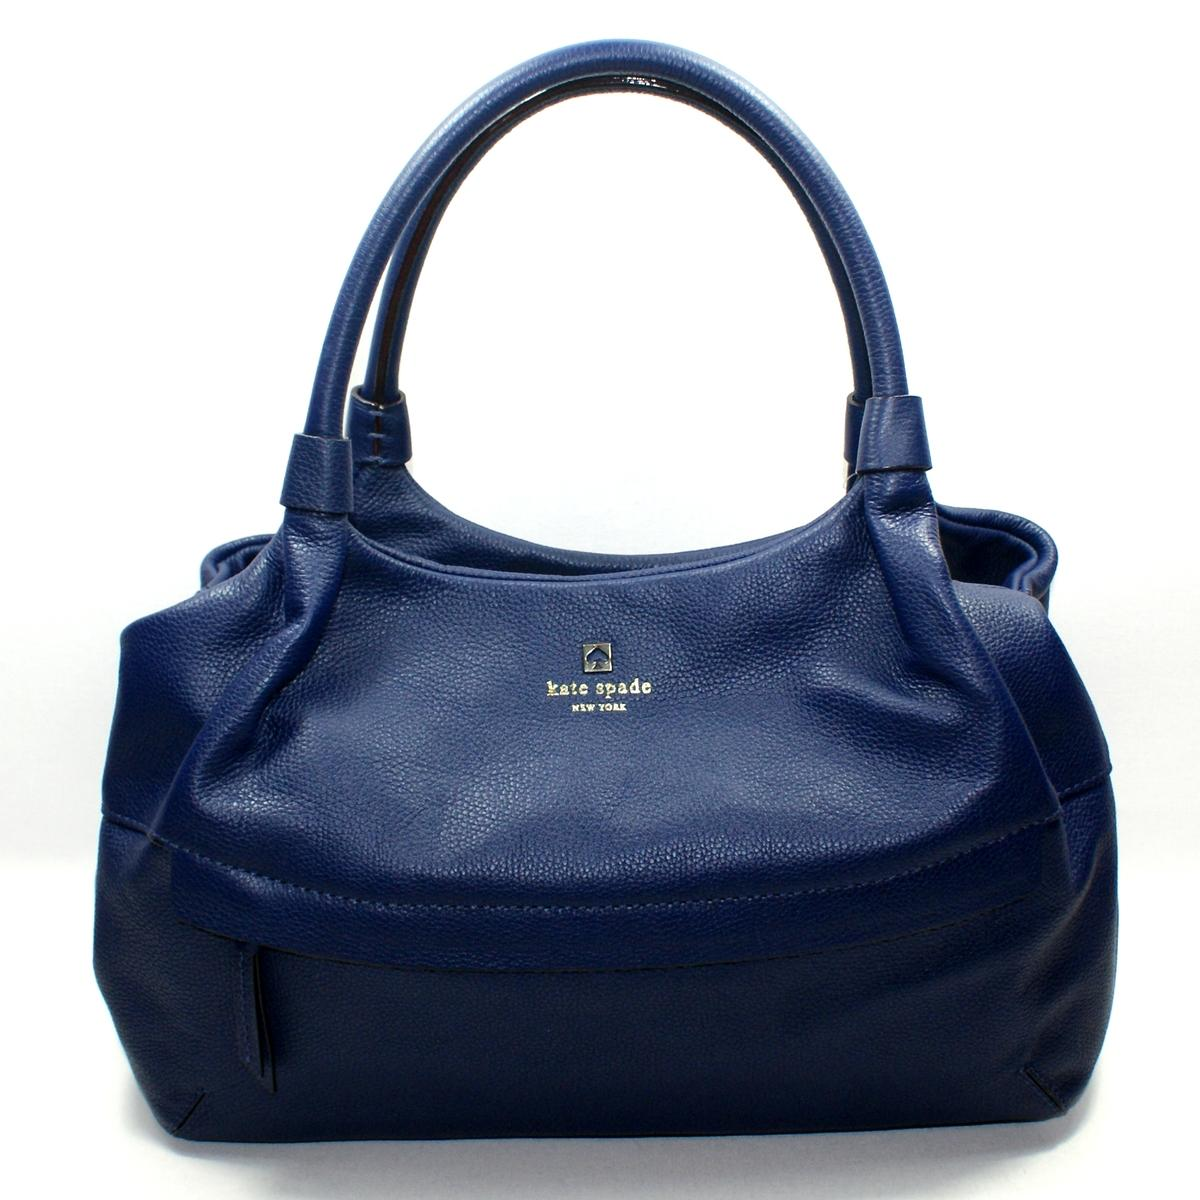 Home Kate Spade Stevie Grant Park Navy Blue Leather Shoulder Bag